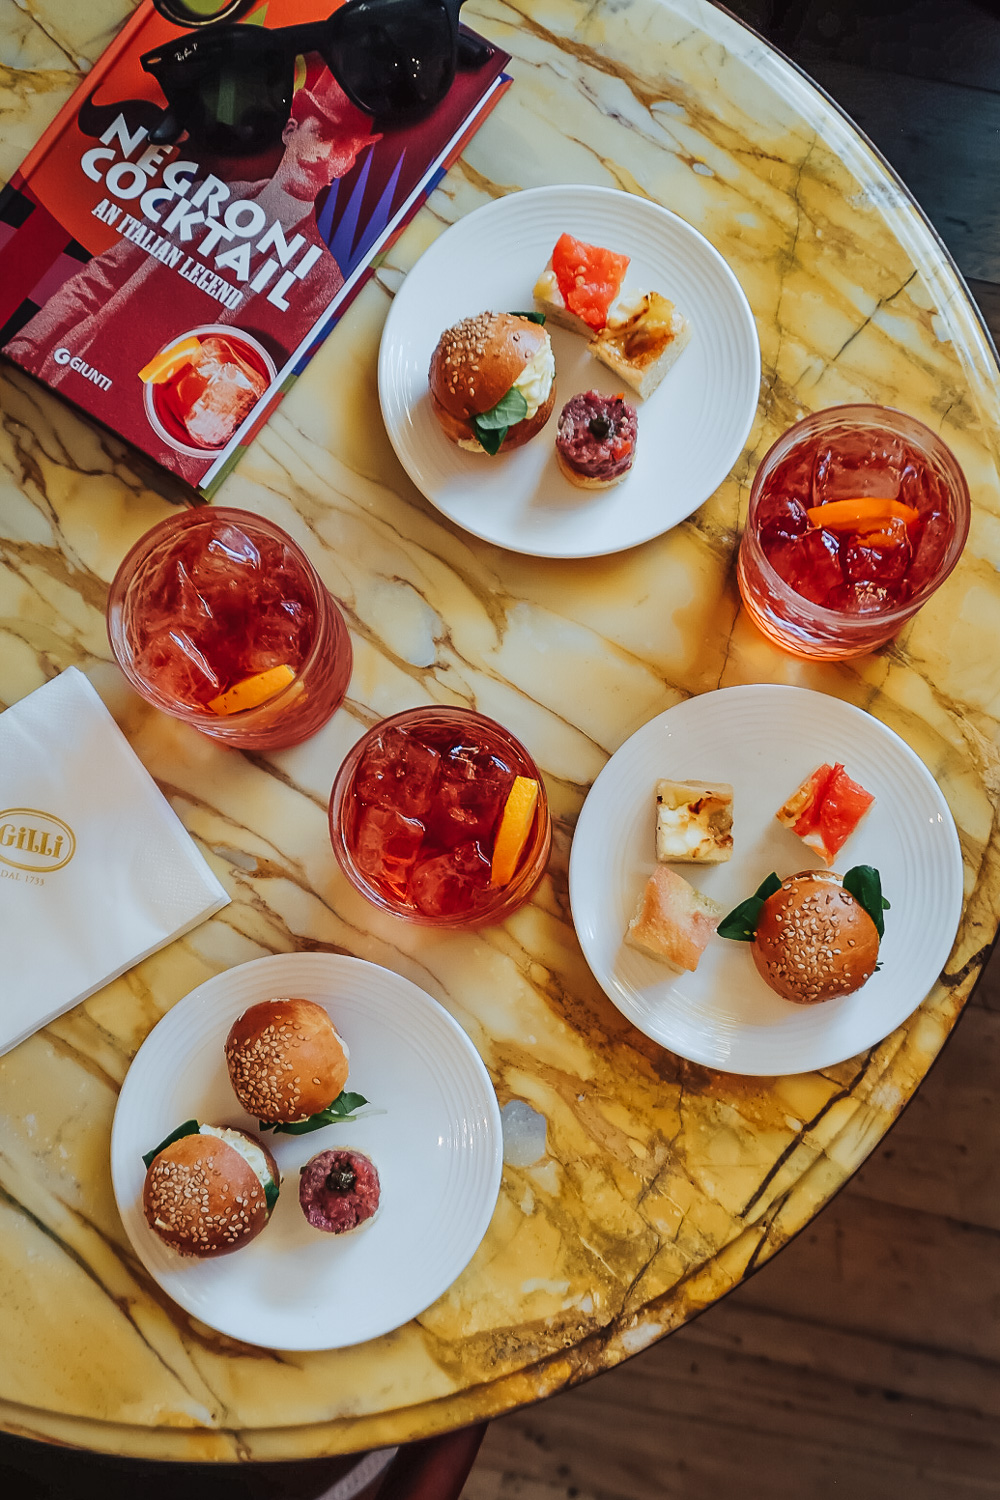 Aperitivo with Negroni cocktails at Caffè Gilli in Florence, Italy